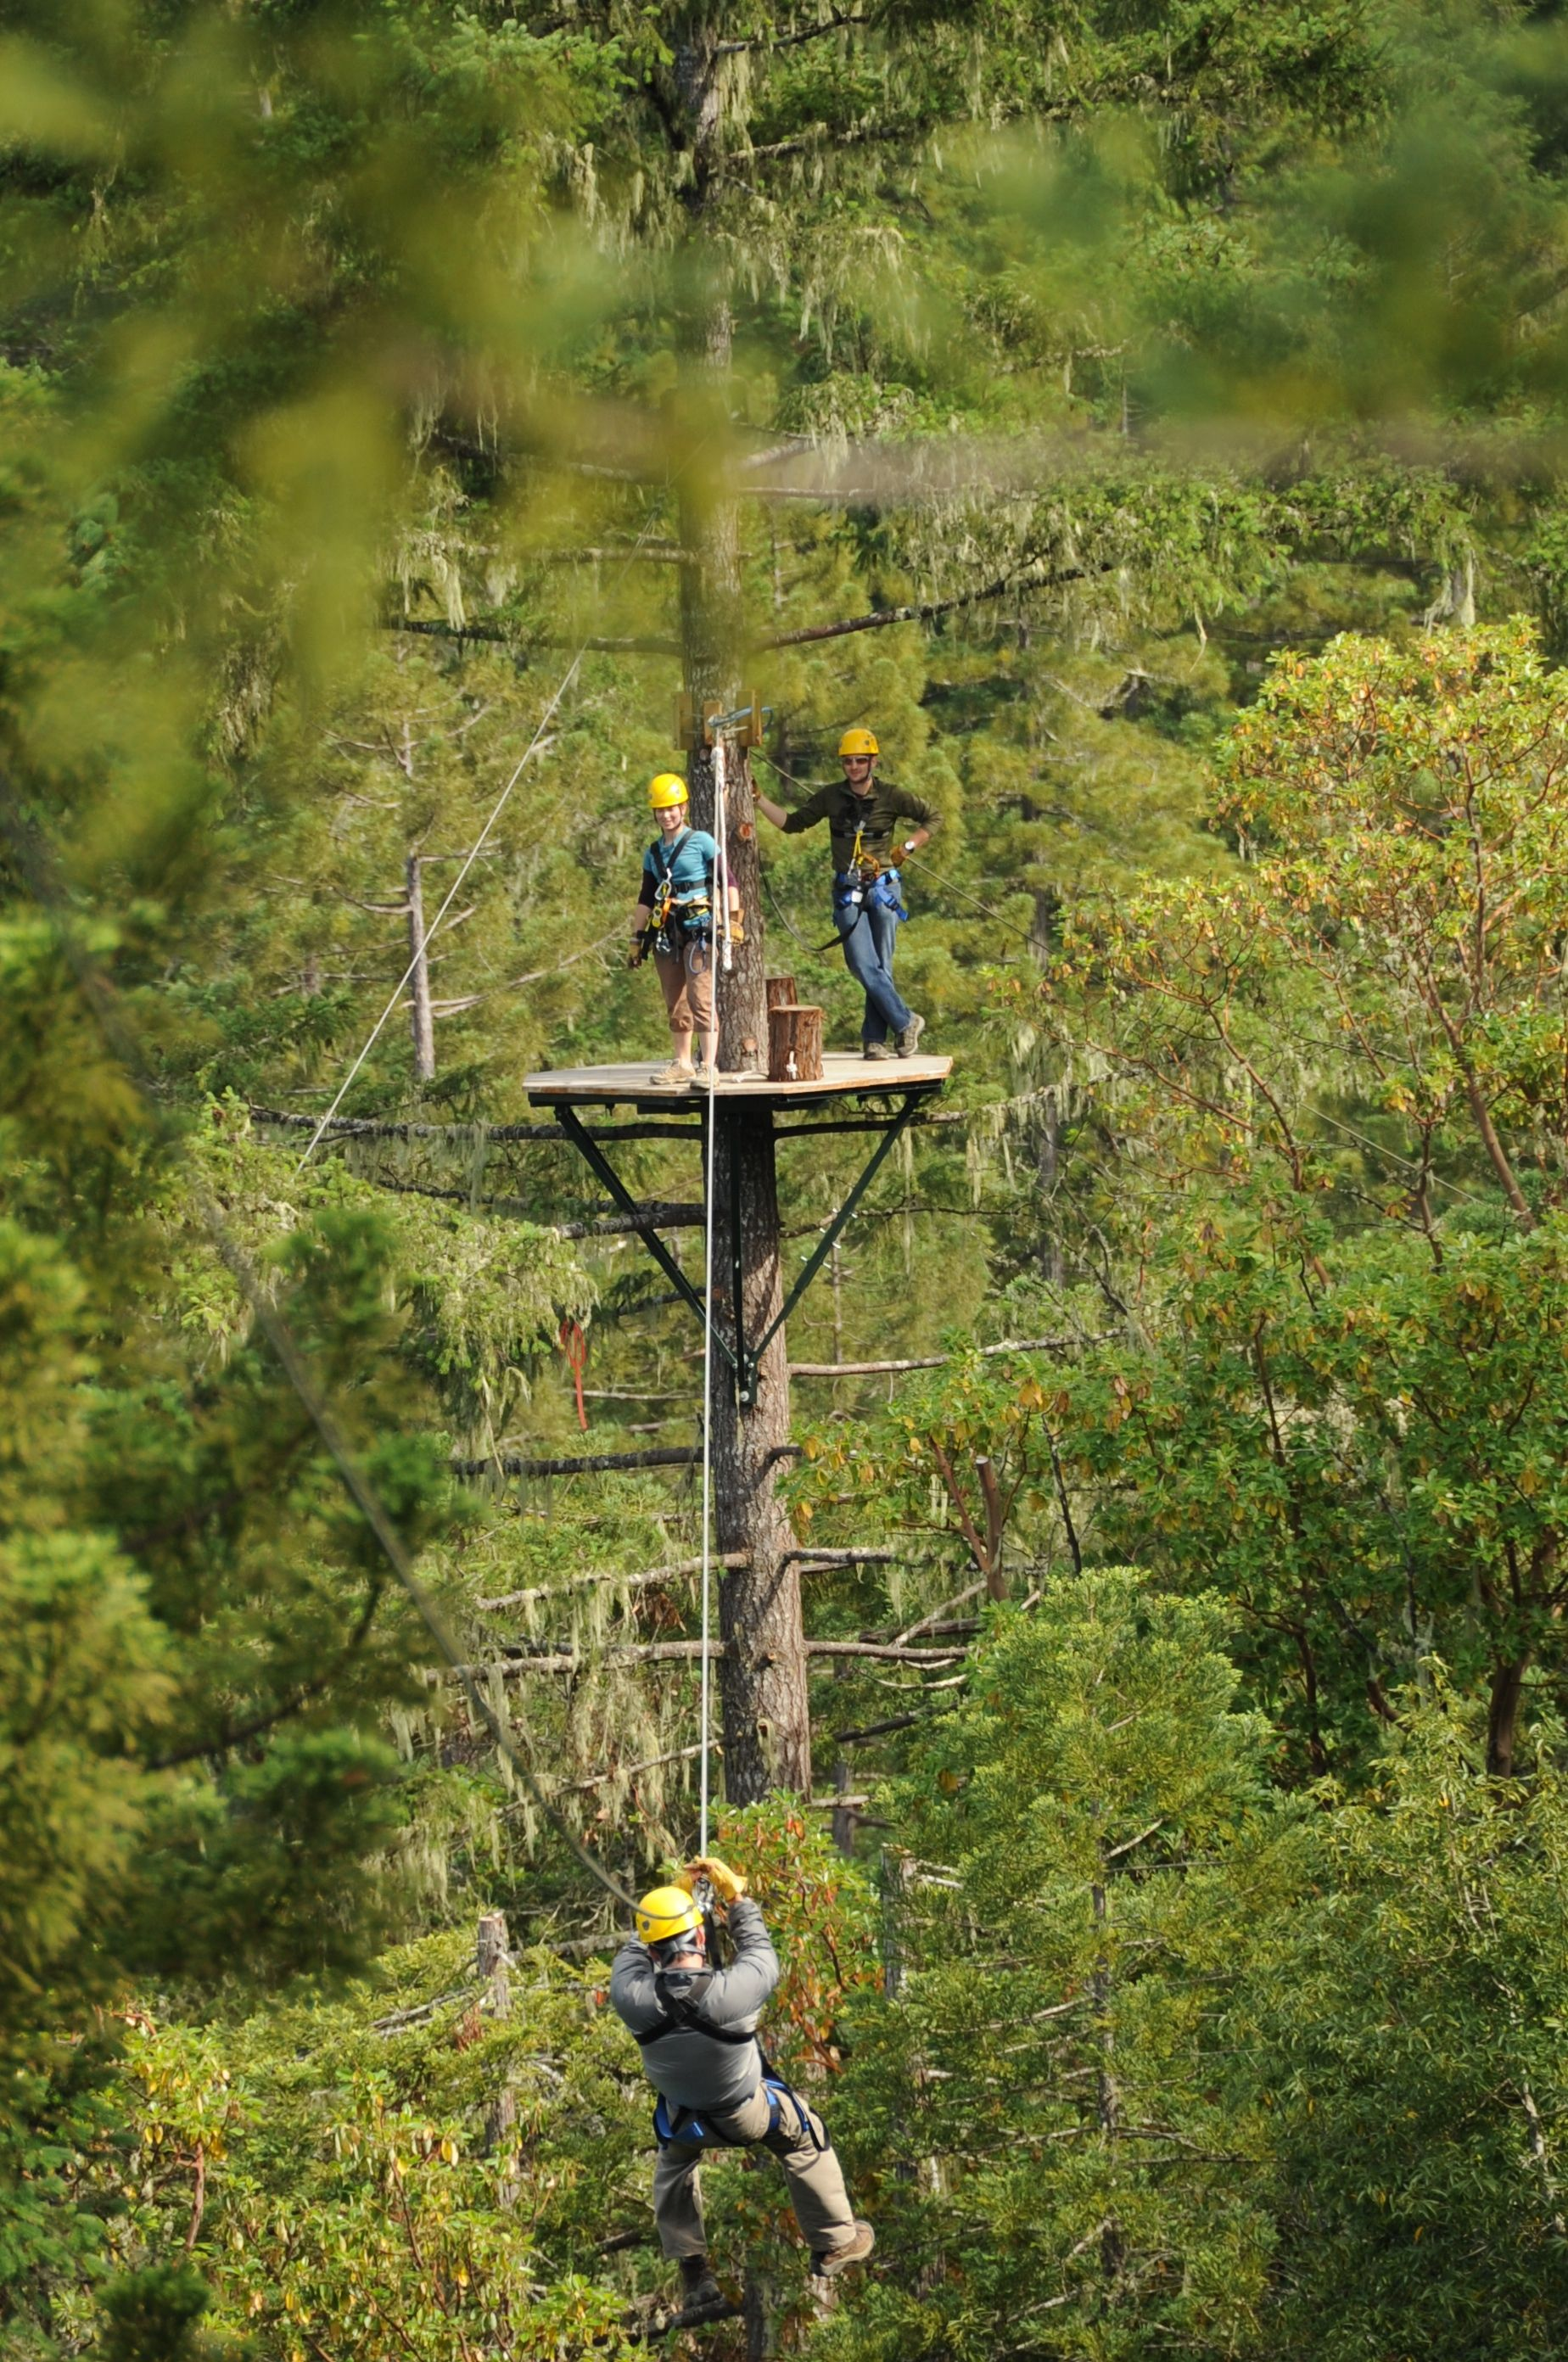 Sonoma Canopy Tours Occidental Sonoma County & Sonoma Canopy Tours Occidental Sonoma County | 101 Things To Do ...